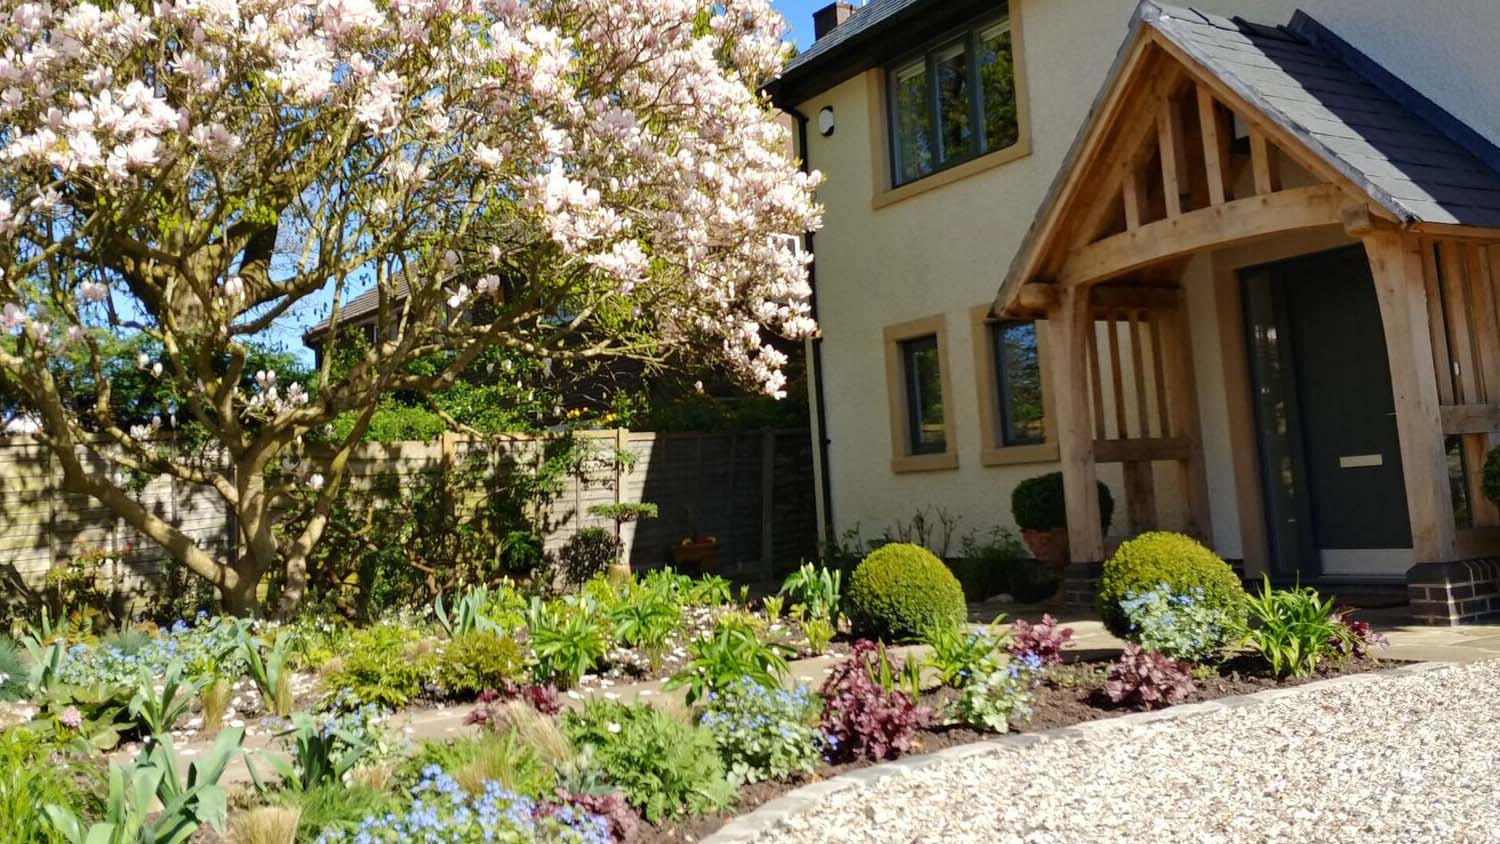 Cheshire Garden Design: The Sun And Shade Garden: House With Magnolia In Full Bloom